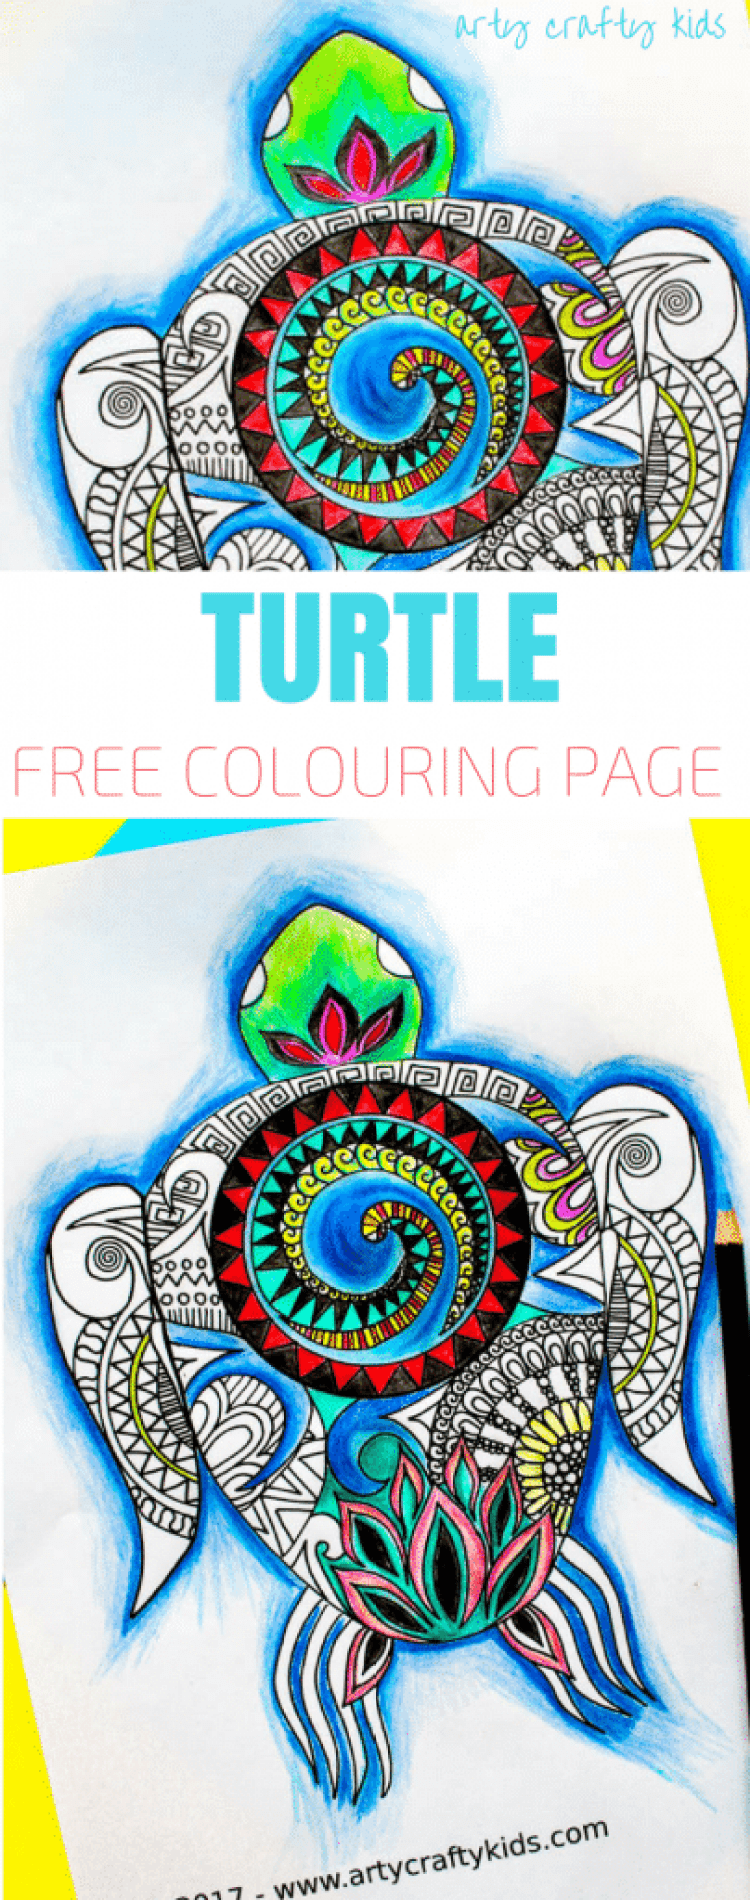 Arty Crafty Kids | Free Coloring Page for Adults and Kids | Moana Inspired Turtle Coloring Page